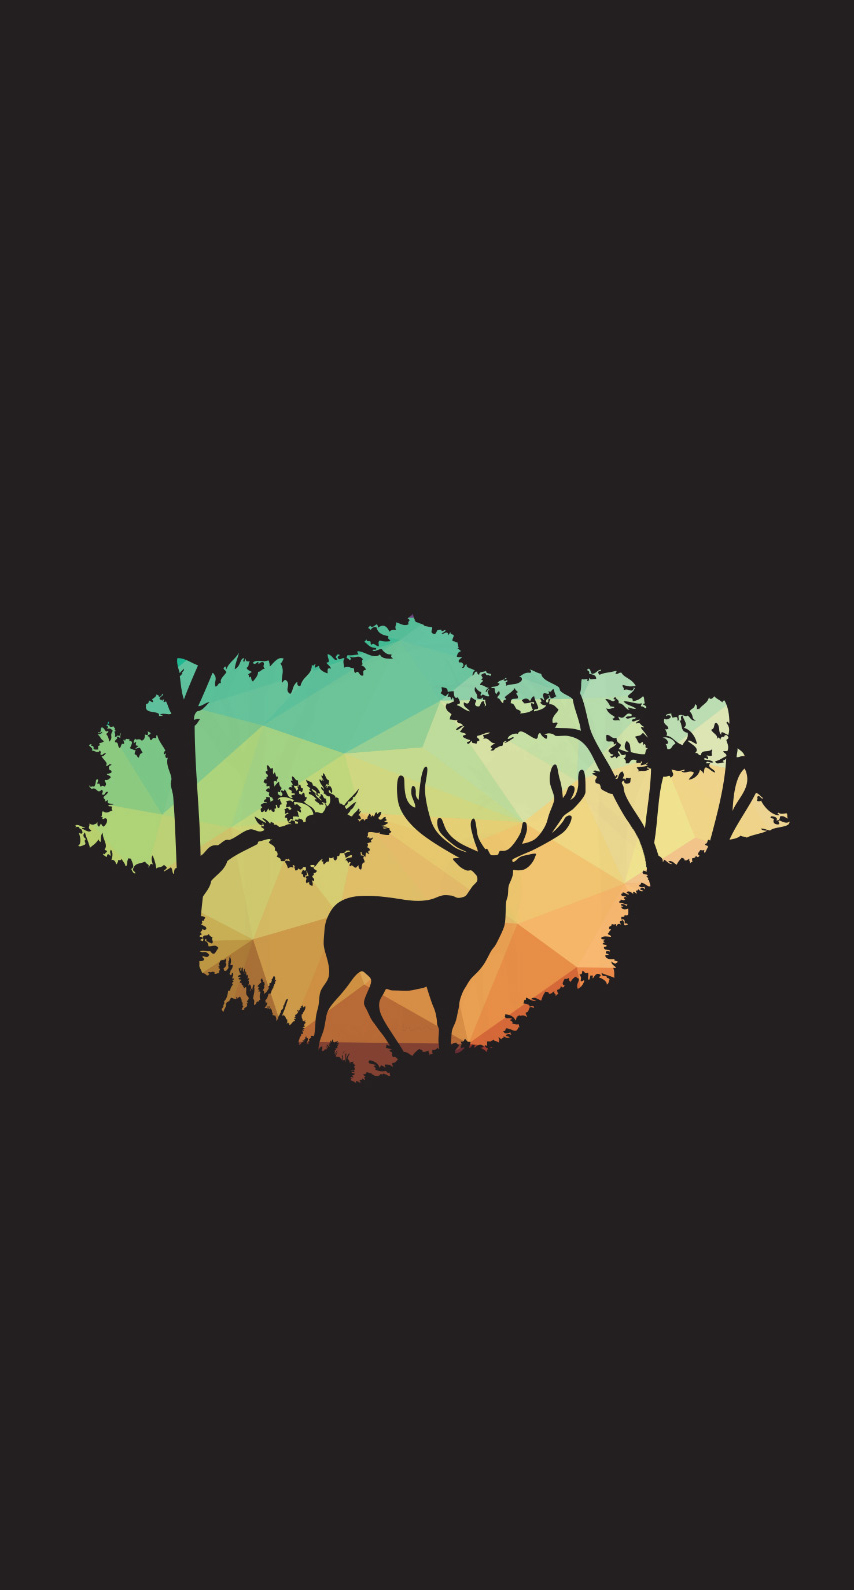 sunset, light, tree, celebration, art, animal, graphic, design, desktop